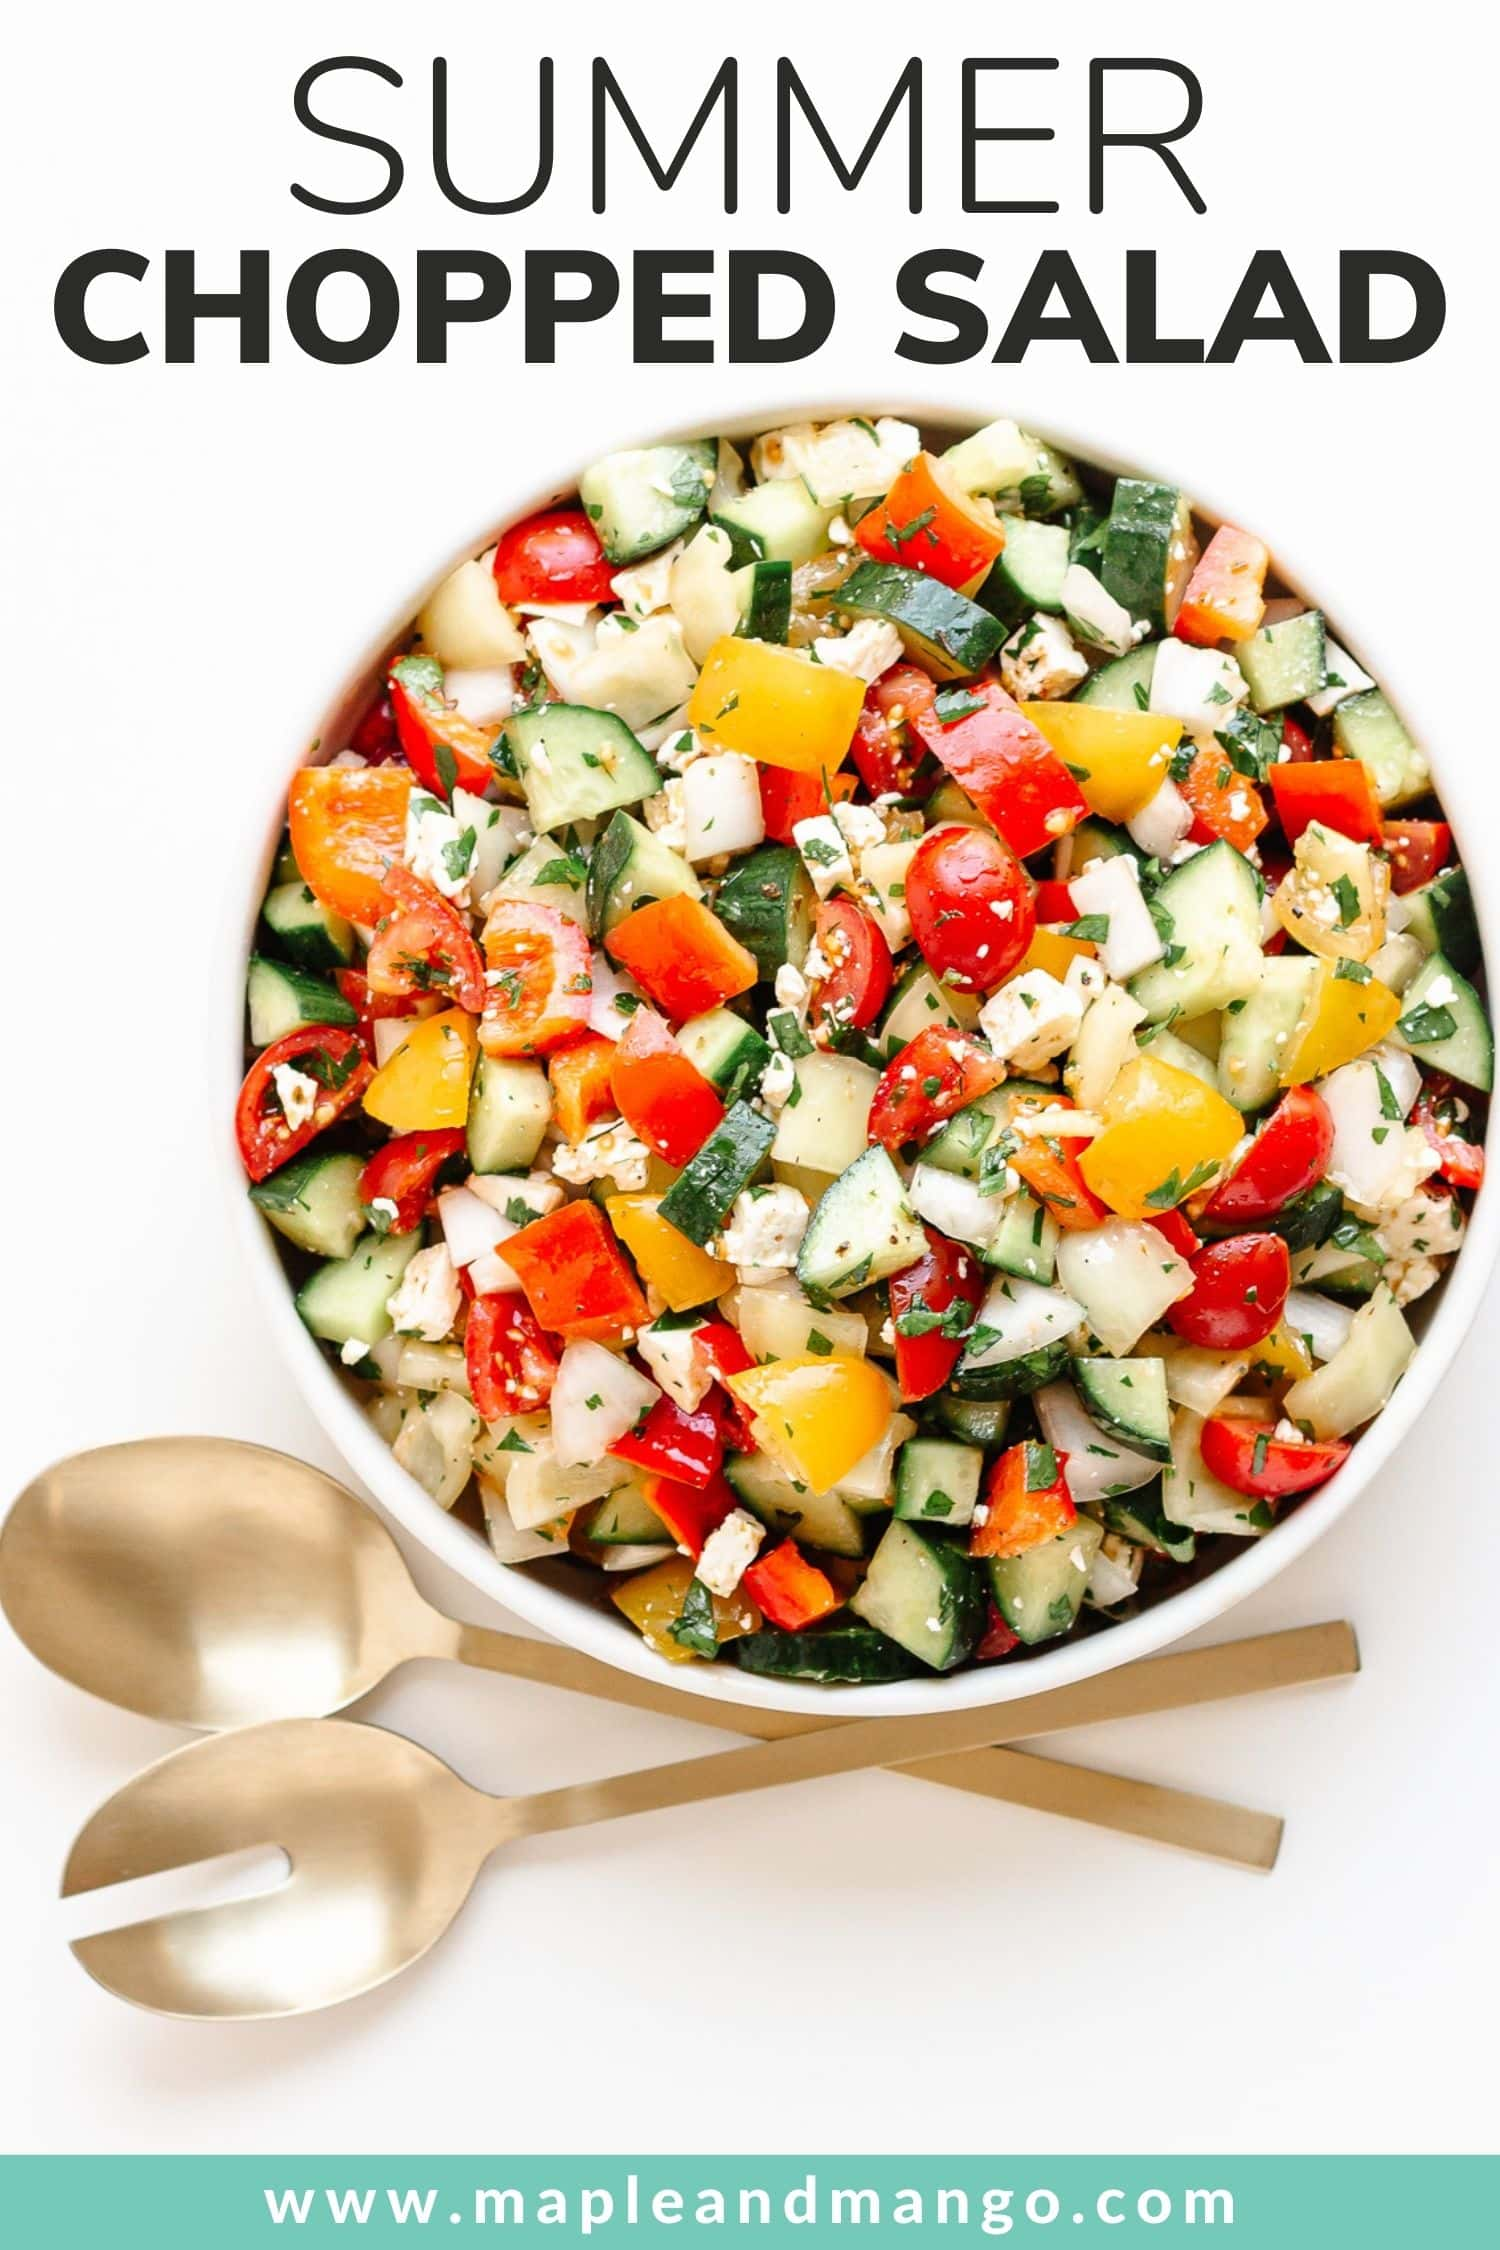 """Bowl of chopped salad with gold salad servers and text overlay """"Summer Chopped Salad""""."""